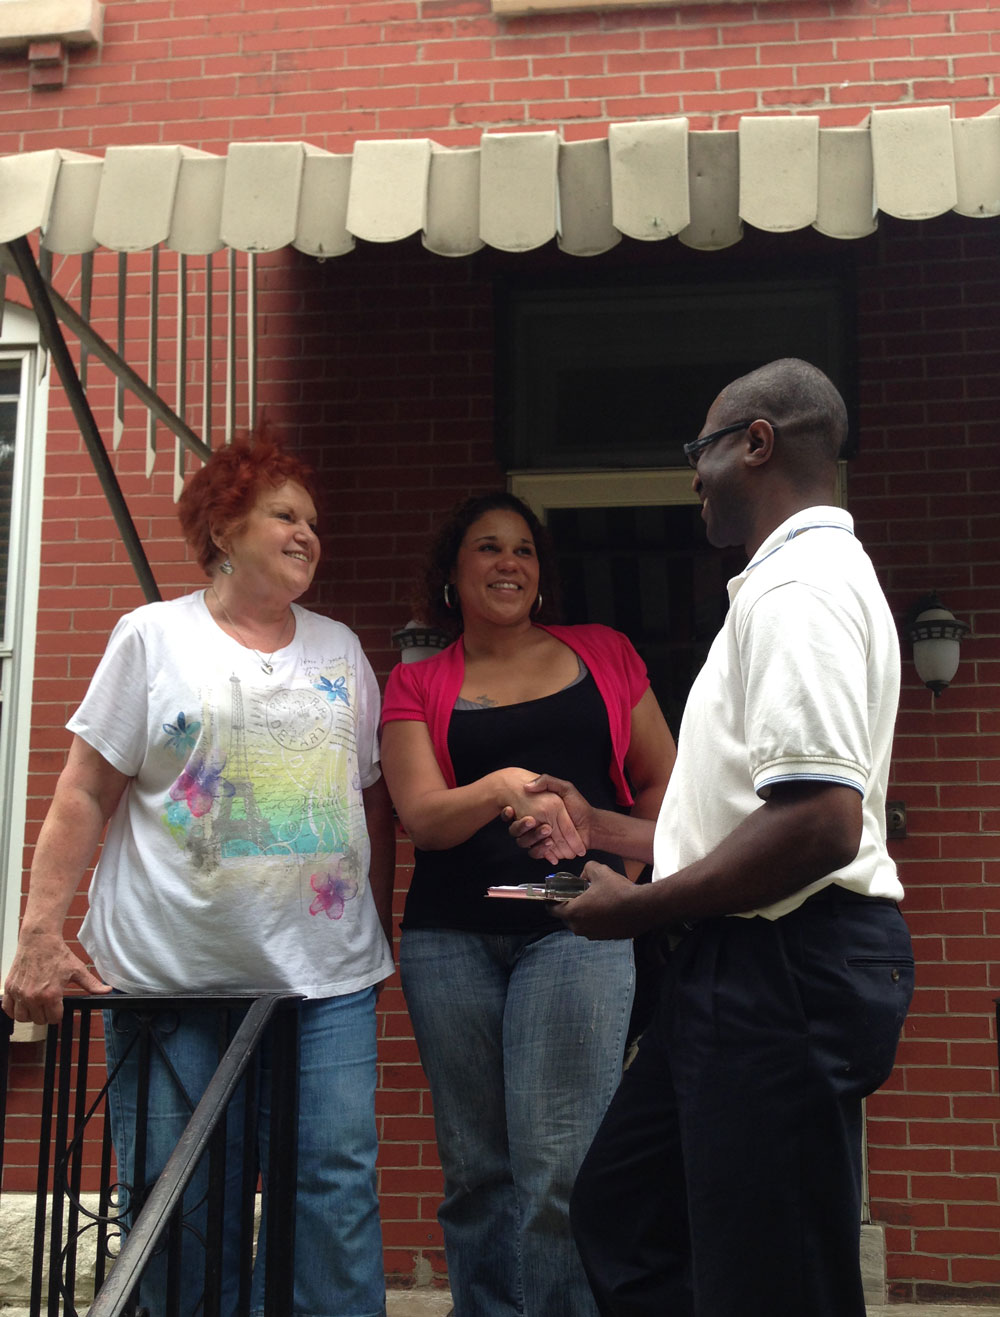 Meeting constituents while canvassing